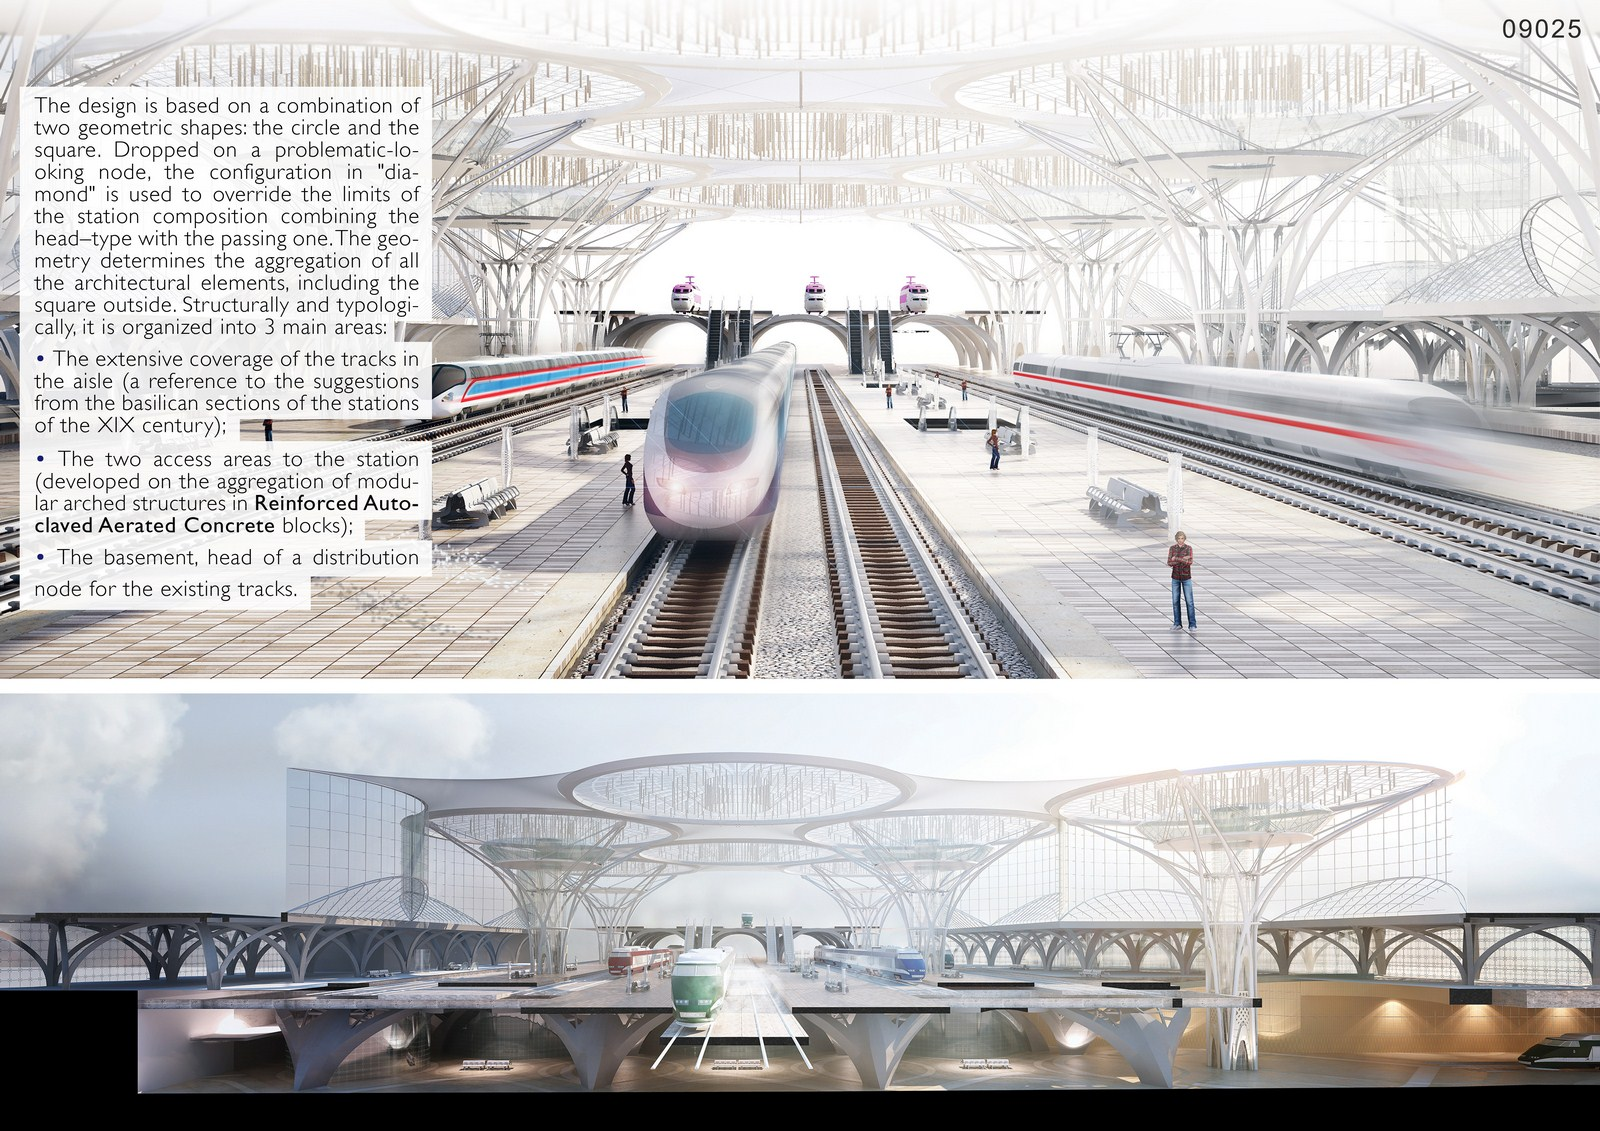 New Bari Central Station By Maurizio Barberio - Sheet2